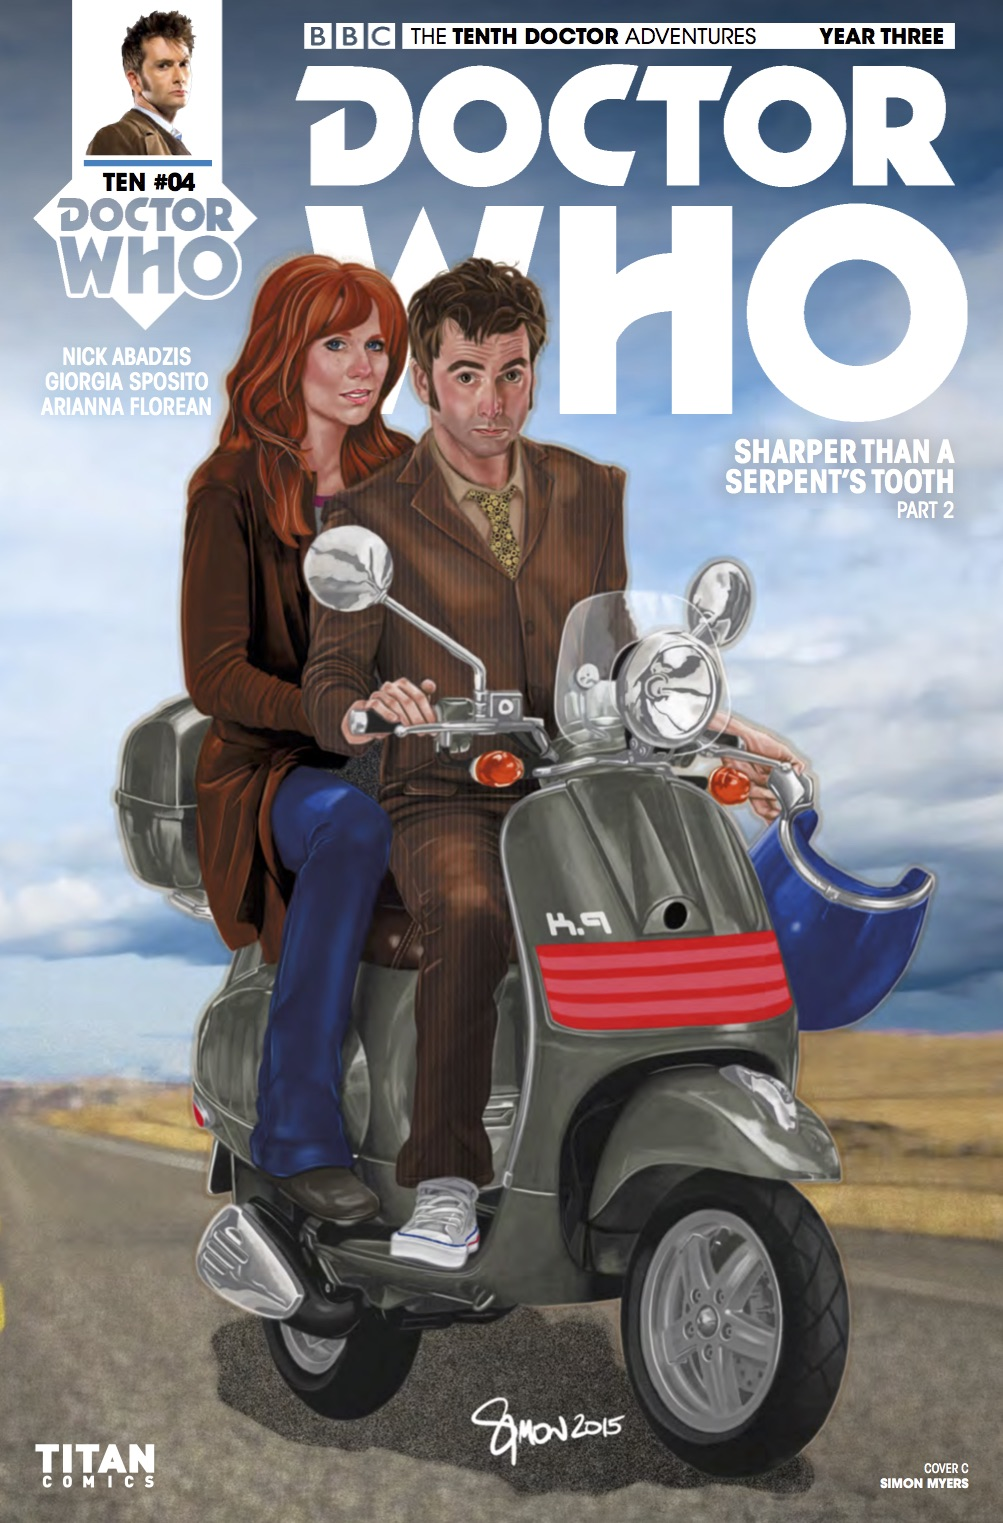 TITAN COMICS - DOCTOR WHO: THE TENTH DOCTOR YEAR THREE #4 COVER C: SIMON MYERS